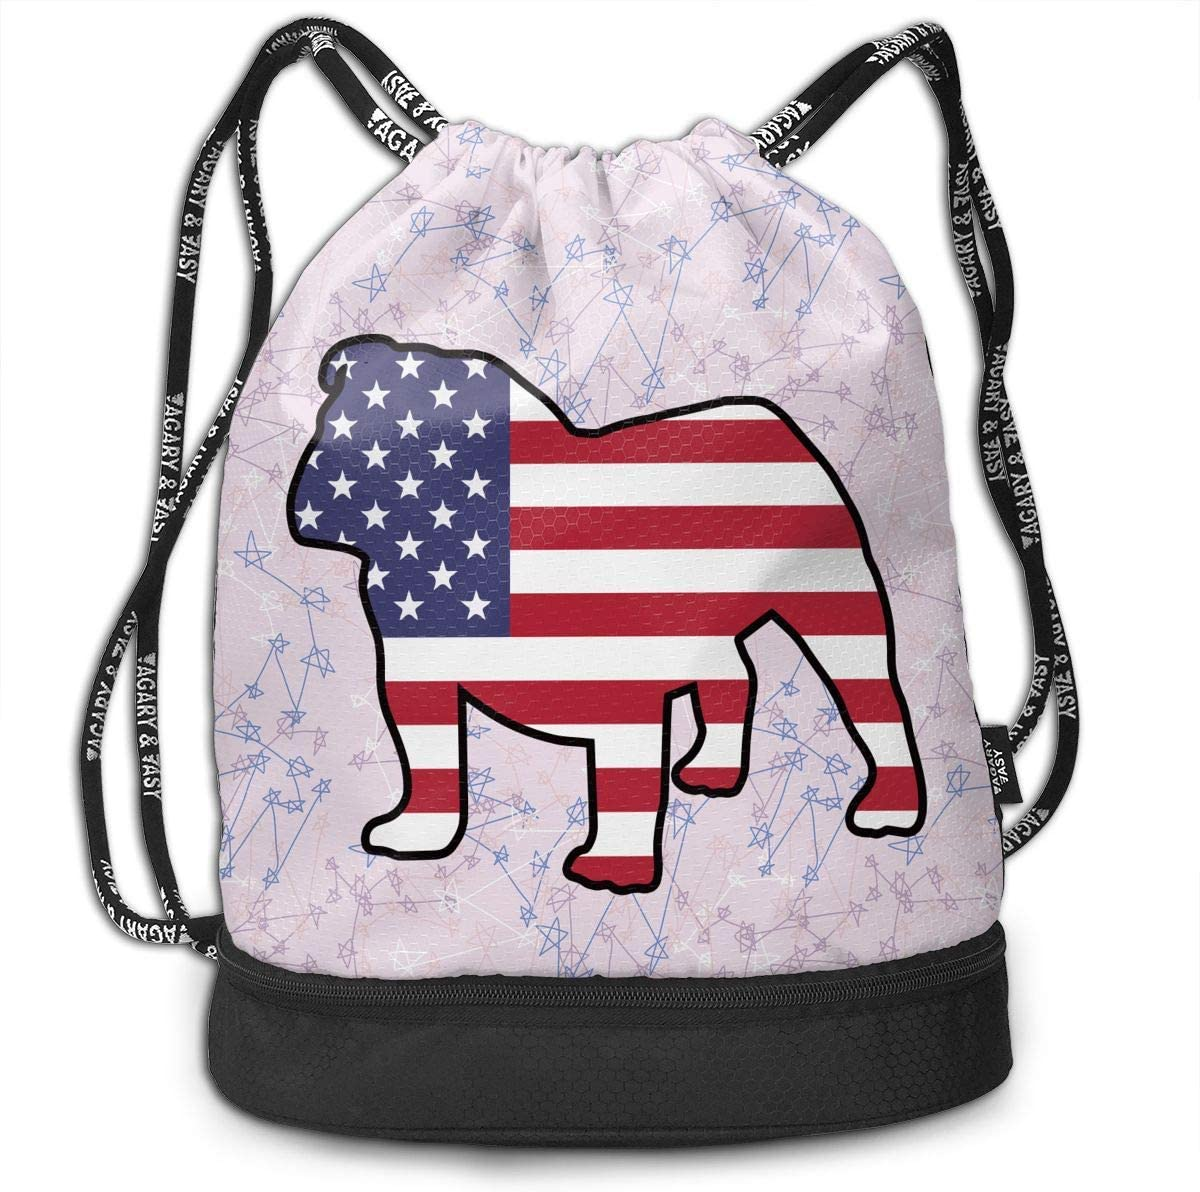 English Bulldog American Flag Drawstring Bag Multifunctional String Backpack Custom Cinch Backpack Sport Gym Sack